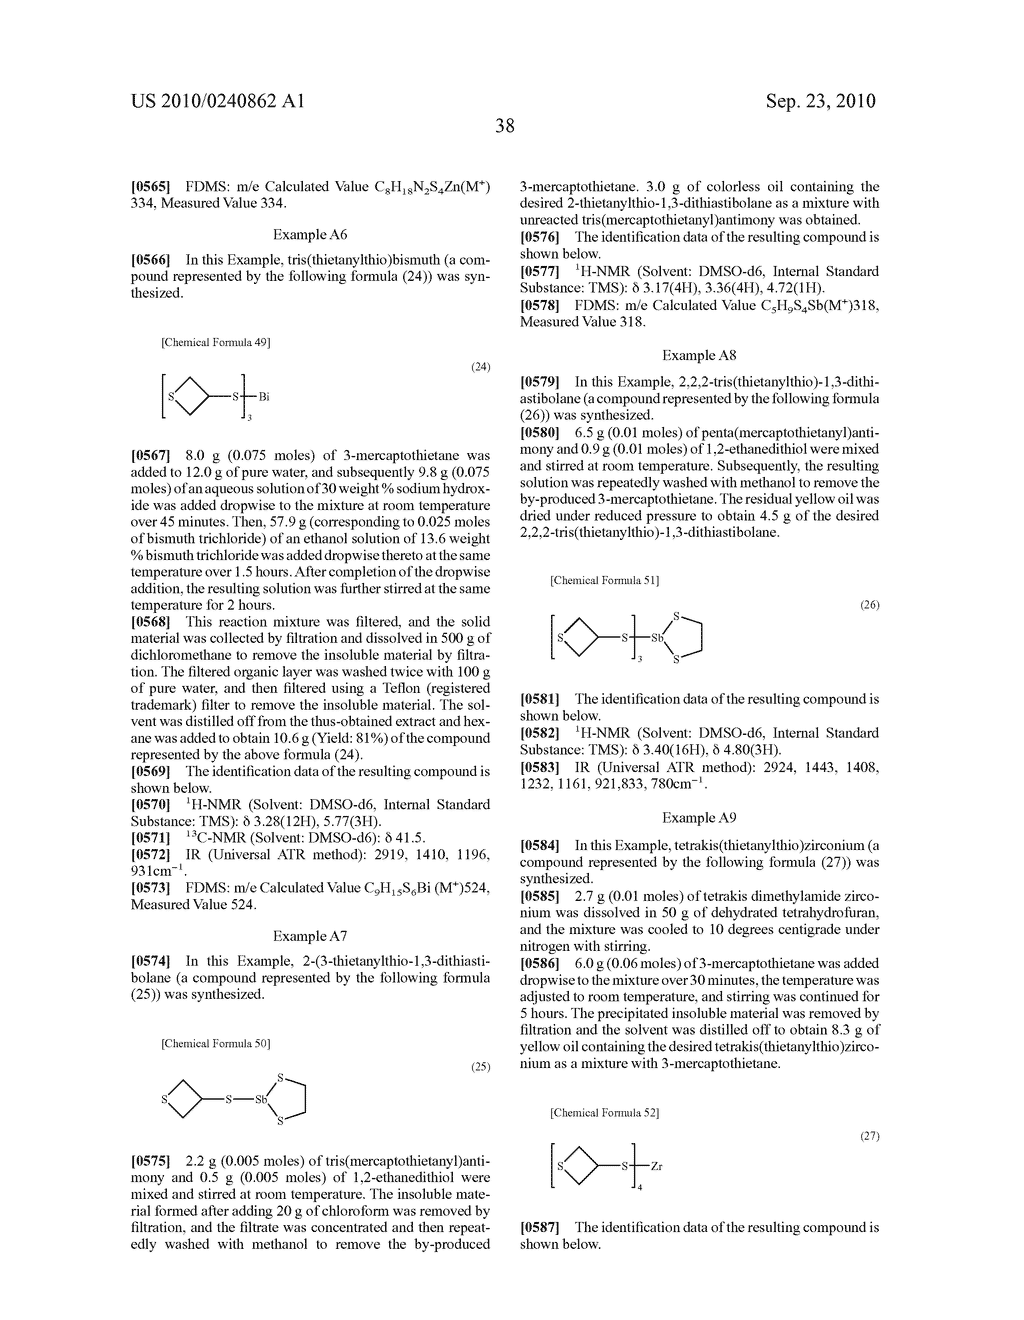 METAL THIETANE COMPOUND, POLYMERIZABLE COMPOSITION CONTAINING THE COMPOUND, RESIN AND USE OF THE RESIN - diagram, schematic, and image 39